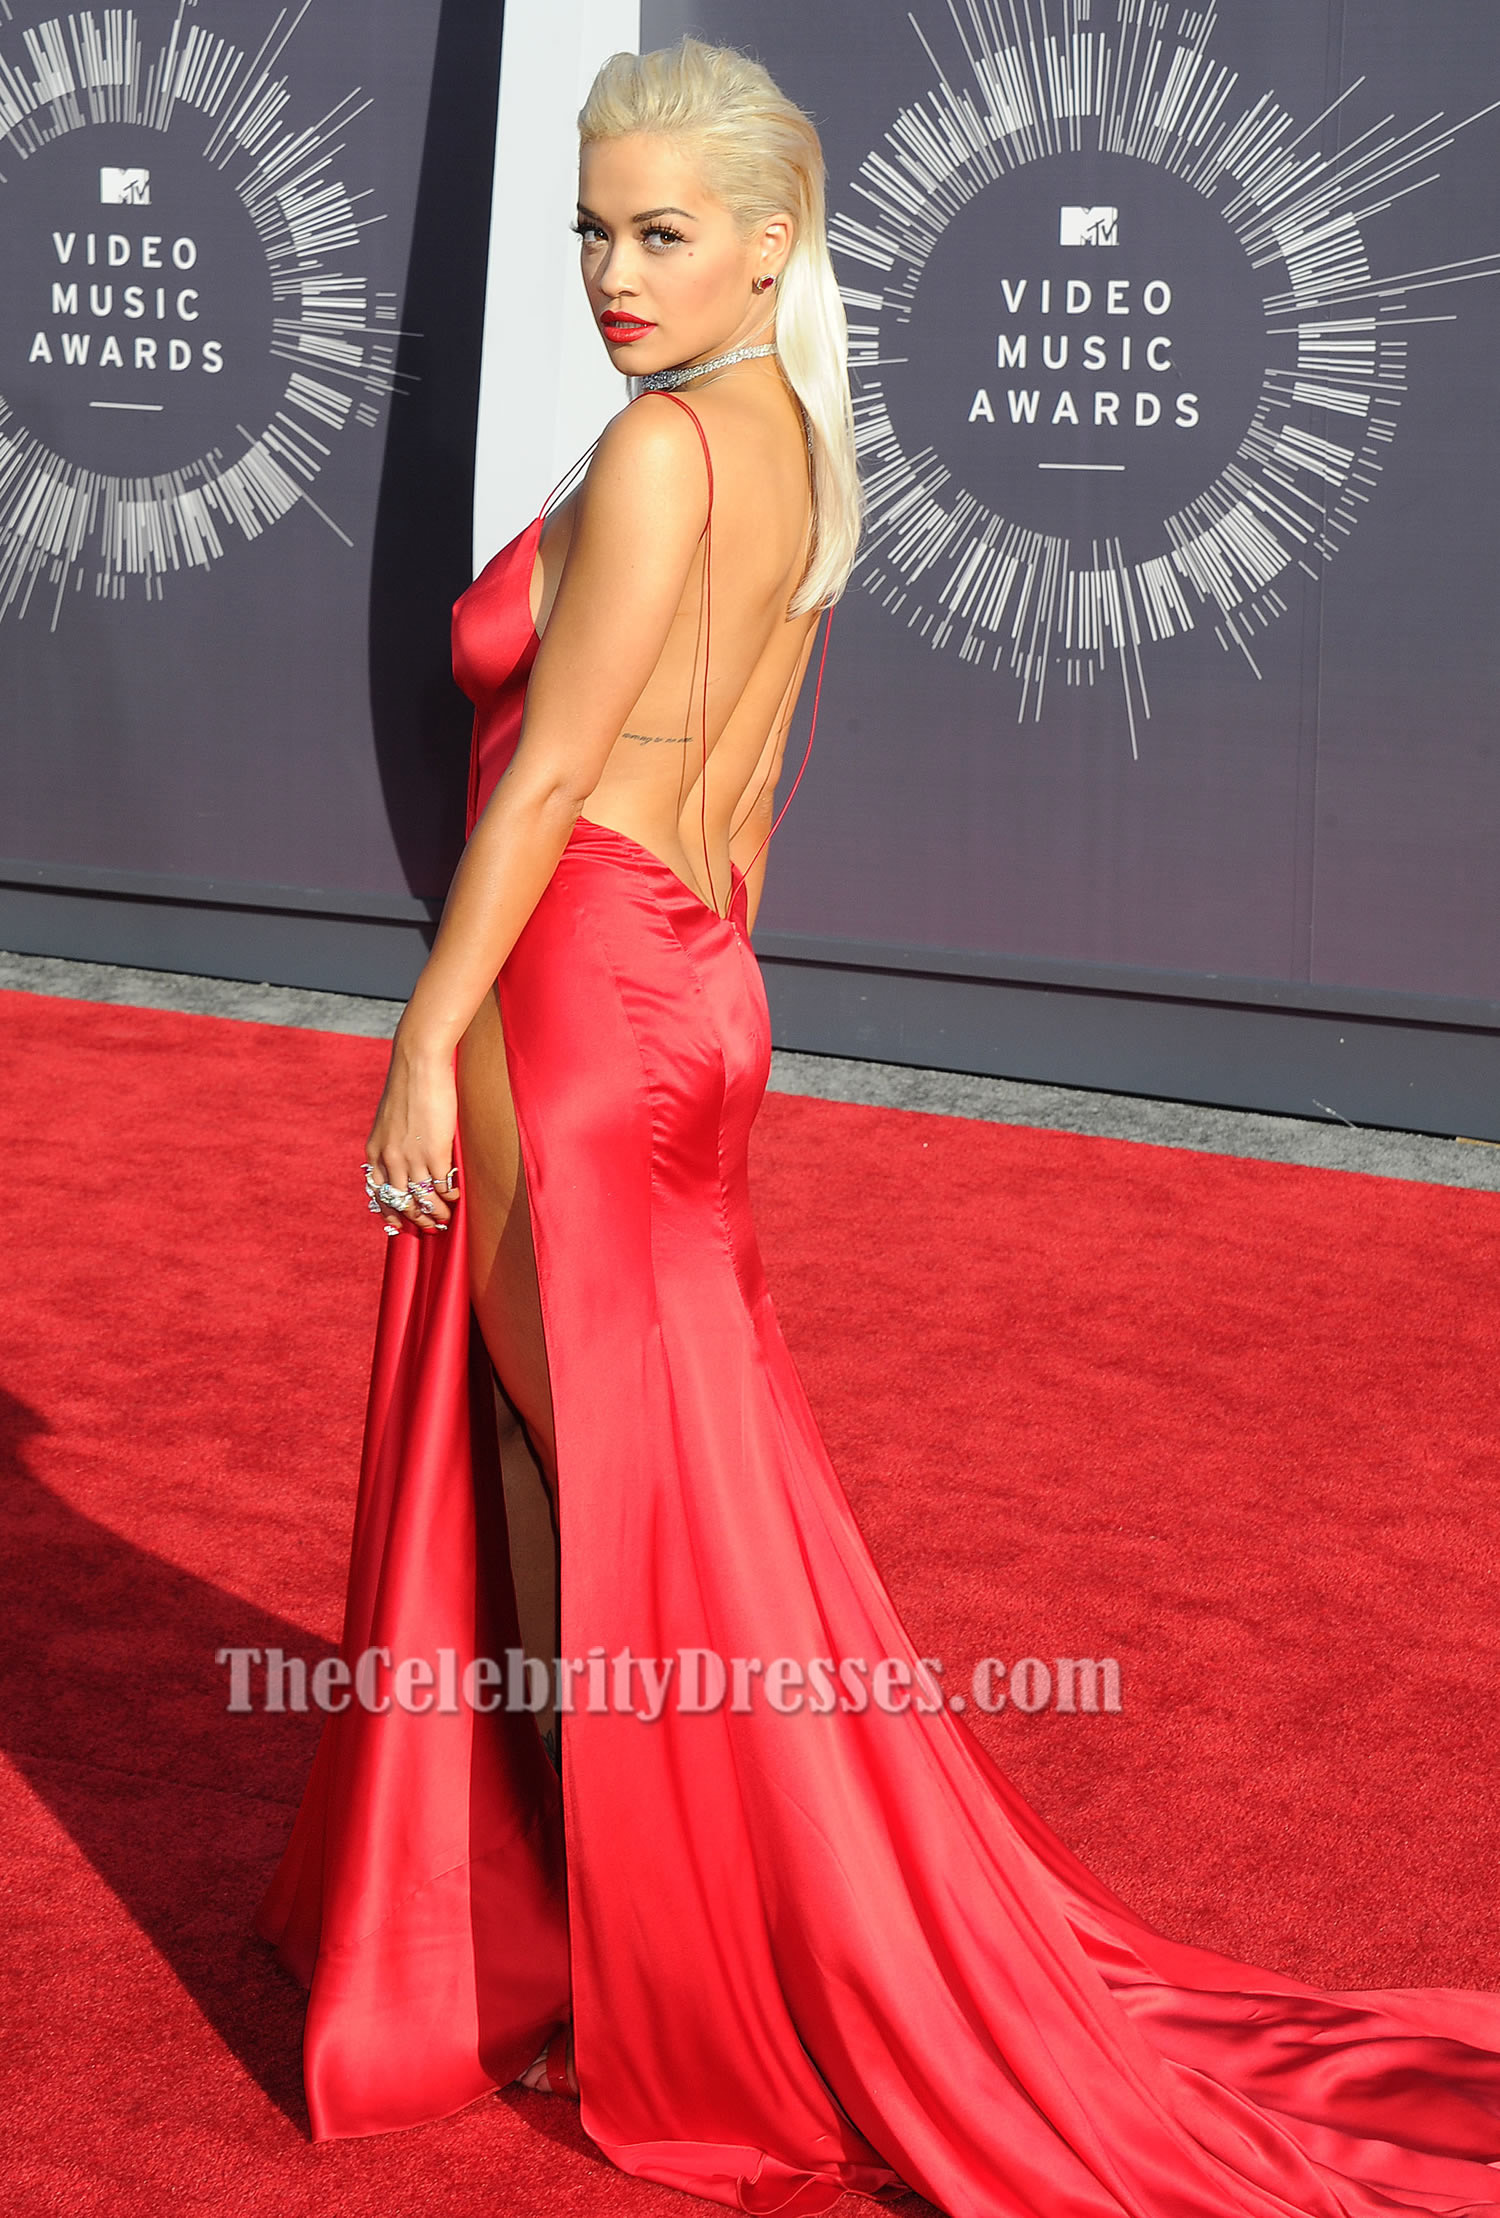 Rita ora sexy red backless evening dress vmas 2014 red carpet thecelebritydresses - Dresses from the red carpet ...